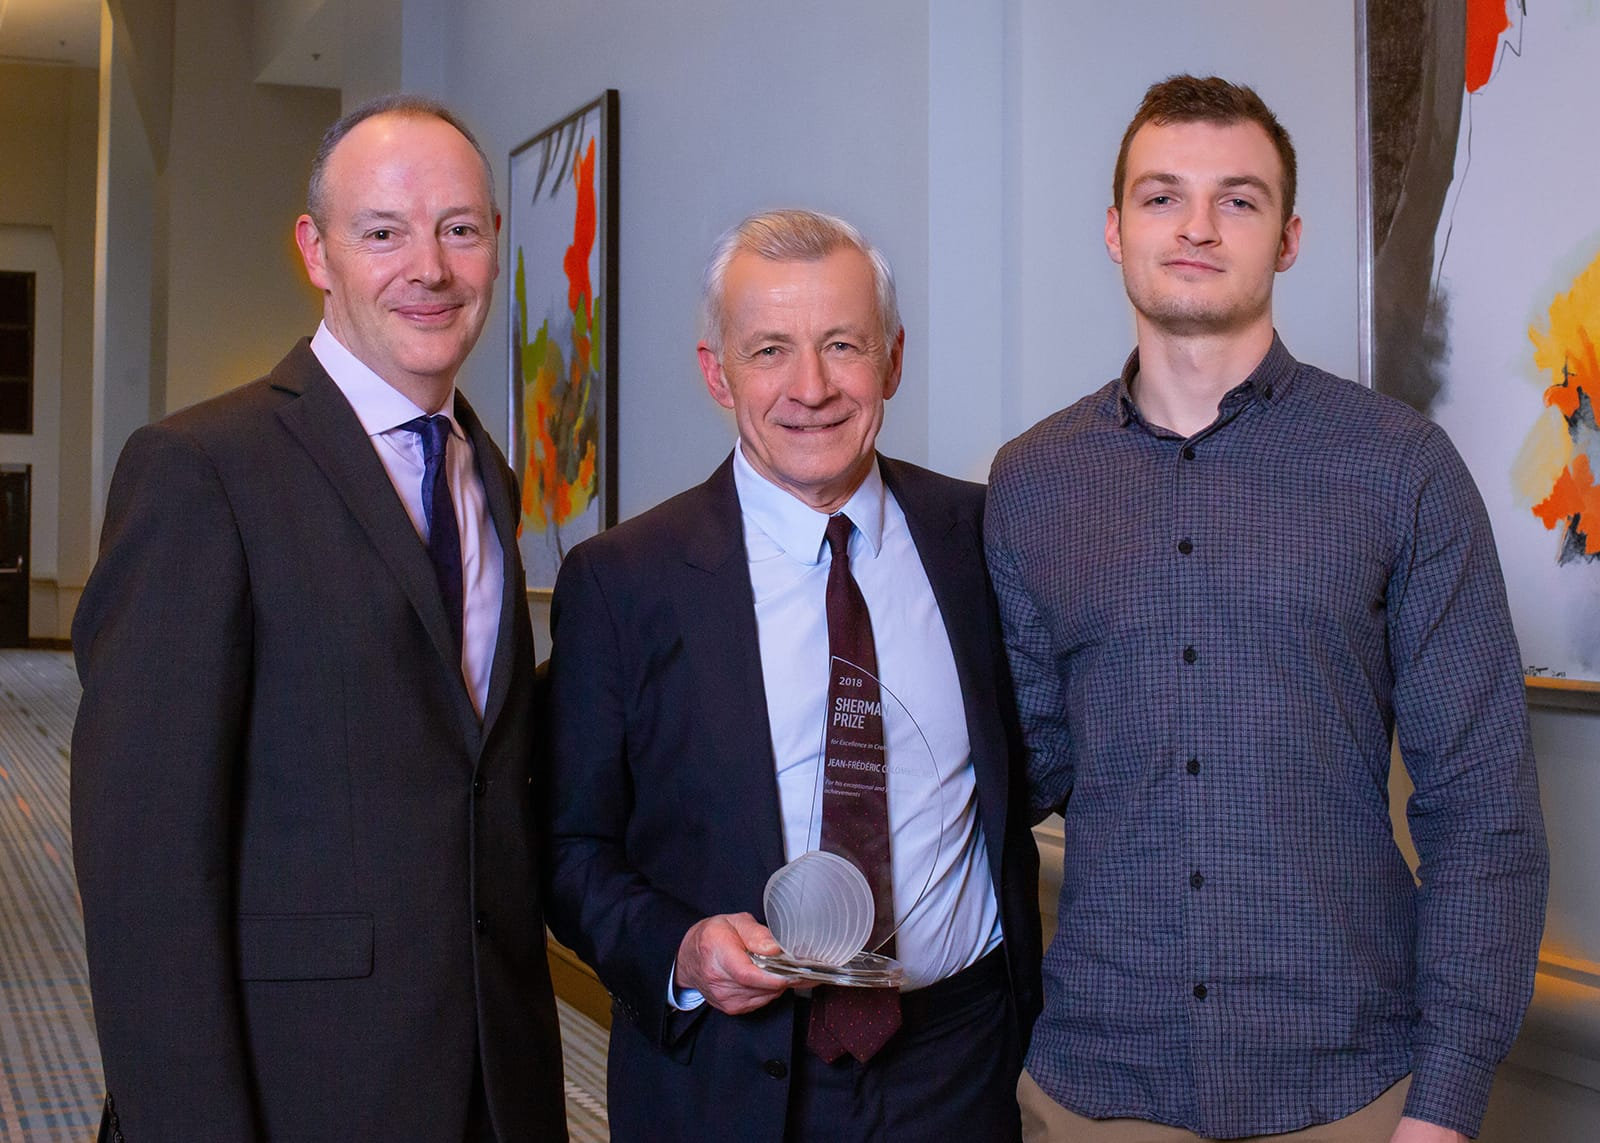 <p>Dr. Dermot McGovern and Dr. Jean-Frederic Colombel with his son</p>